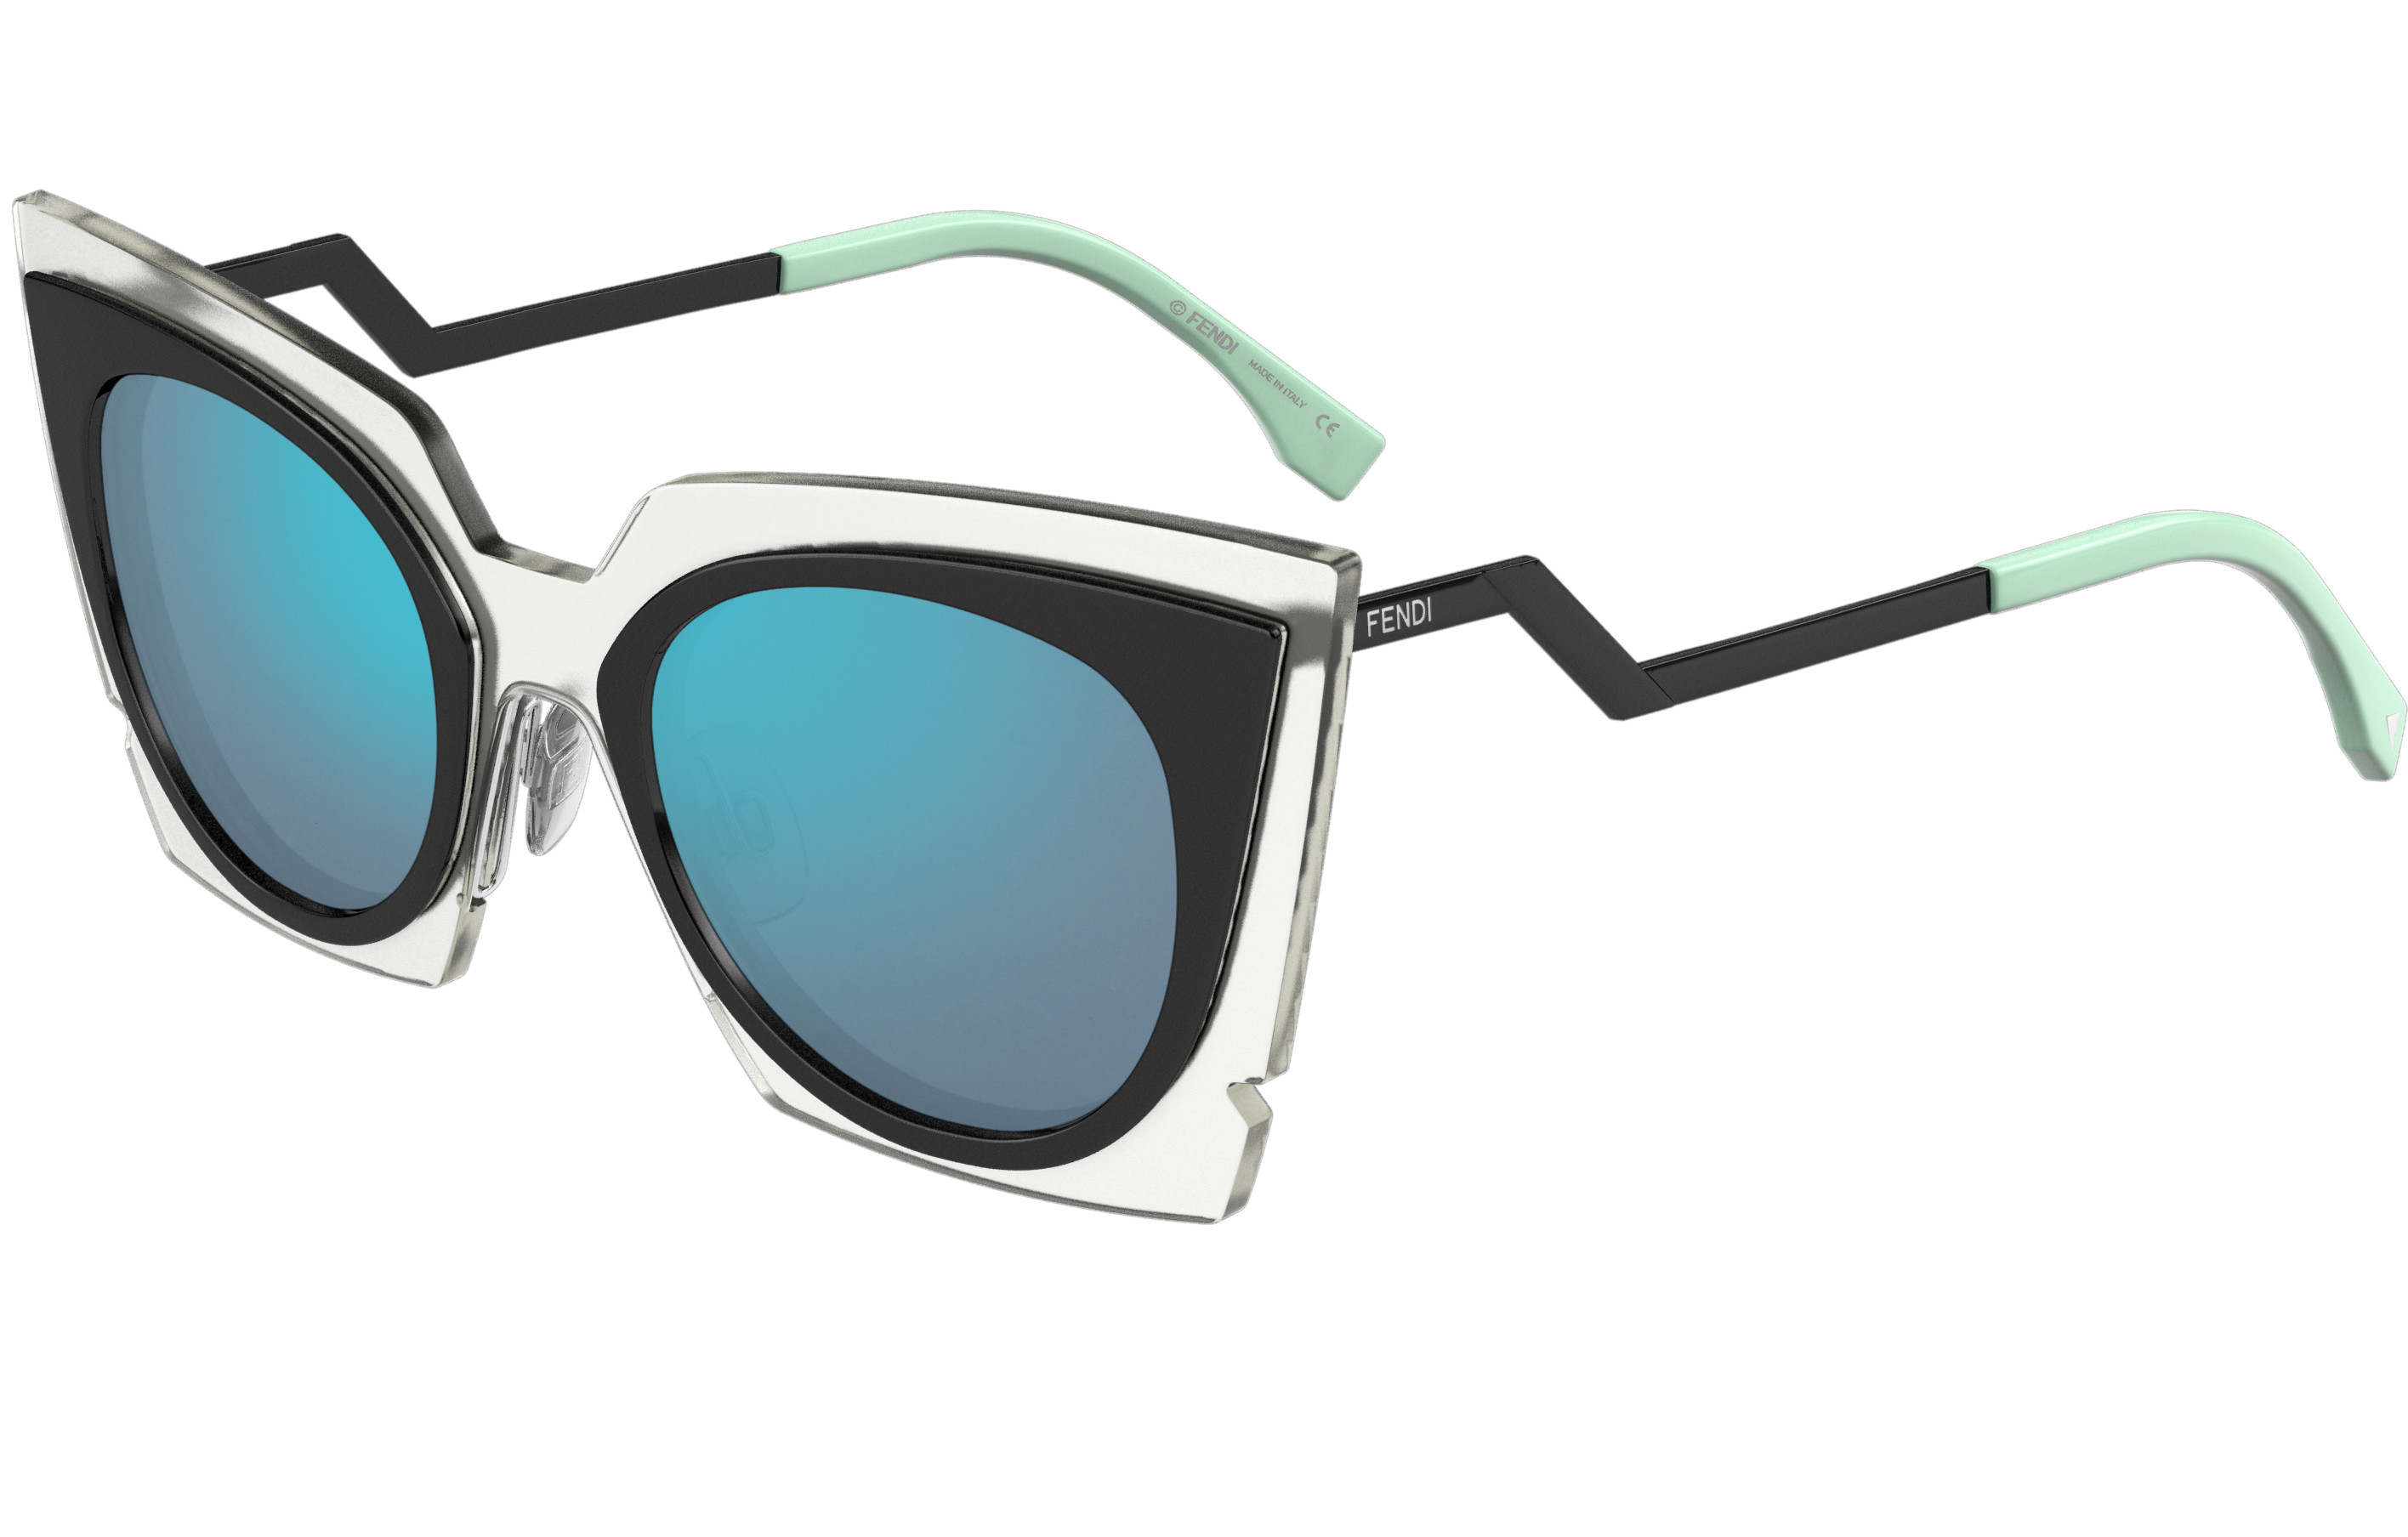 01_FENDI SS2015_Orchidea Sunglasses